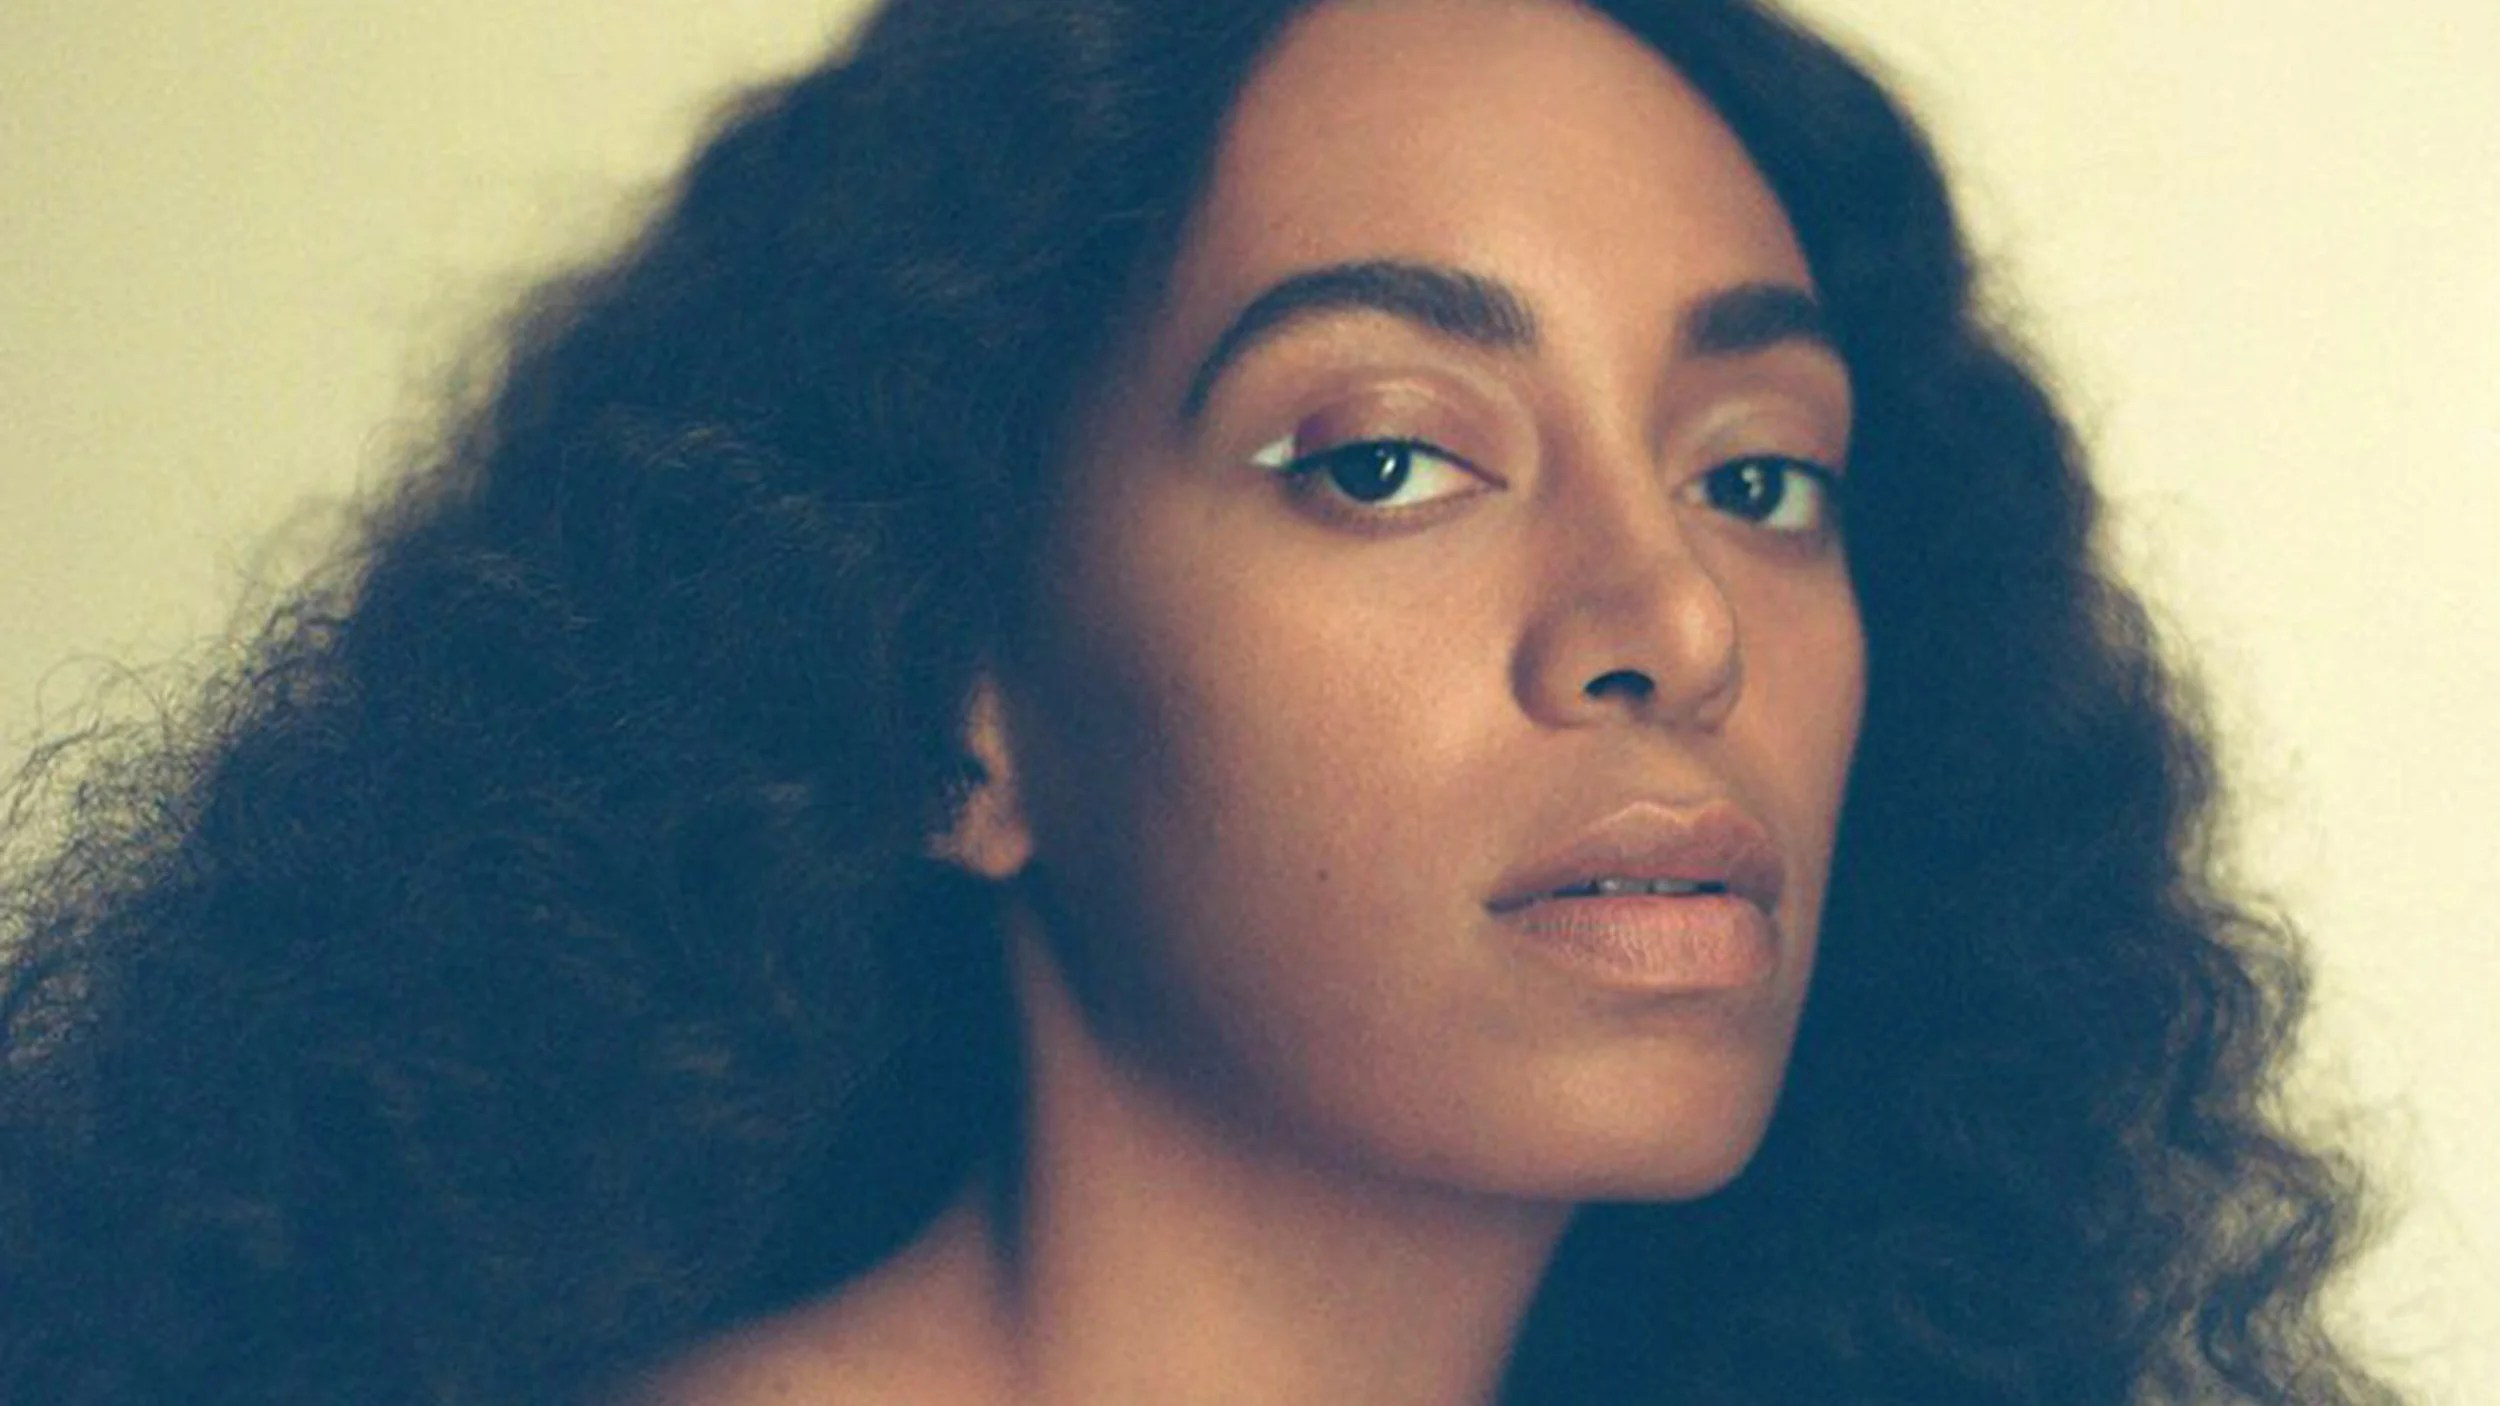 Solange Knowles nudes (49 foto and video), Pussy, Bikini, Twitter, lingerie 2019